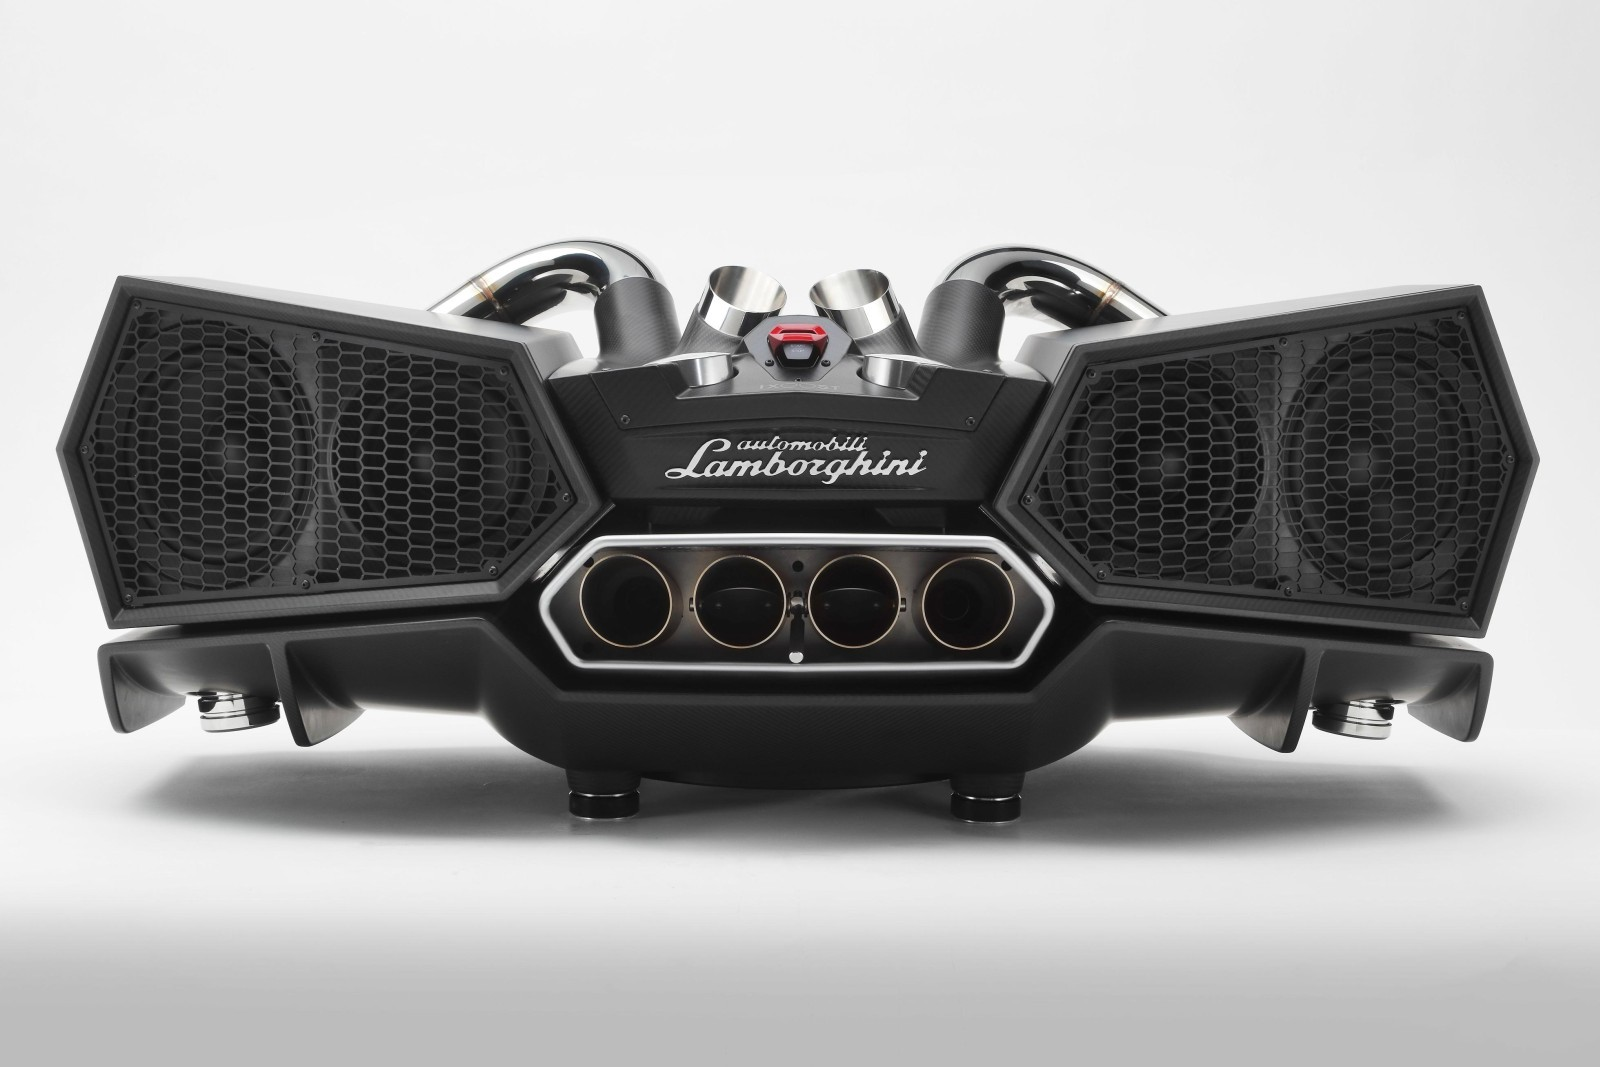 esavox-lamborghini-docking-station-costs-24800-is-made-with-carbon_5.jpg